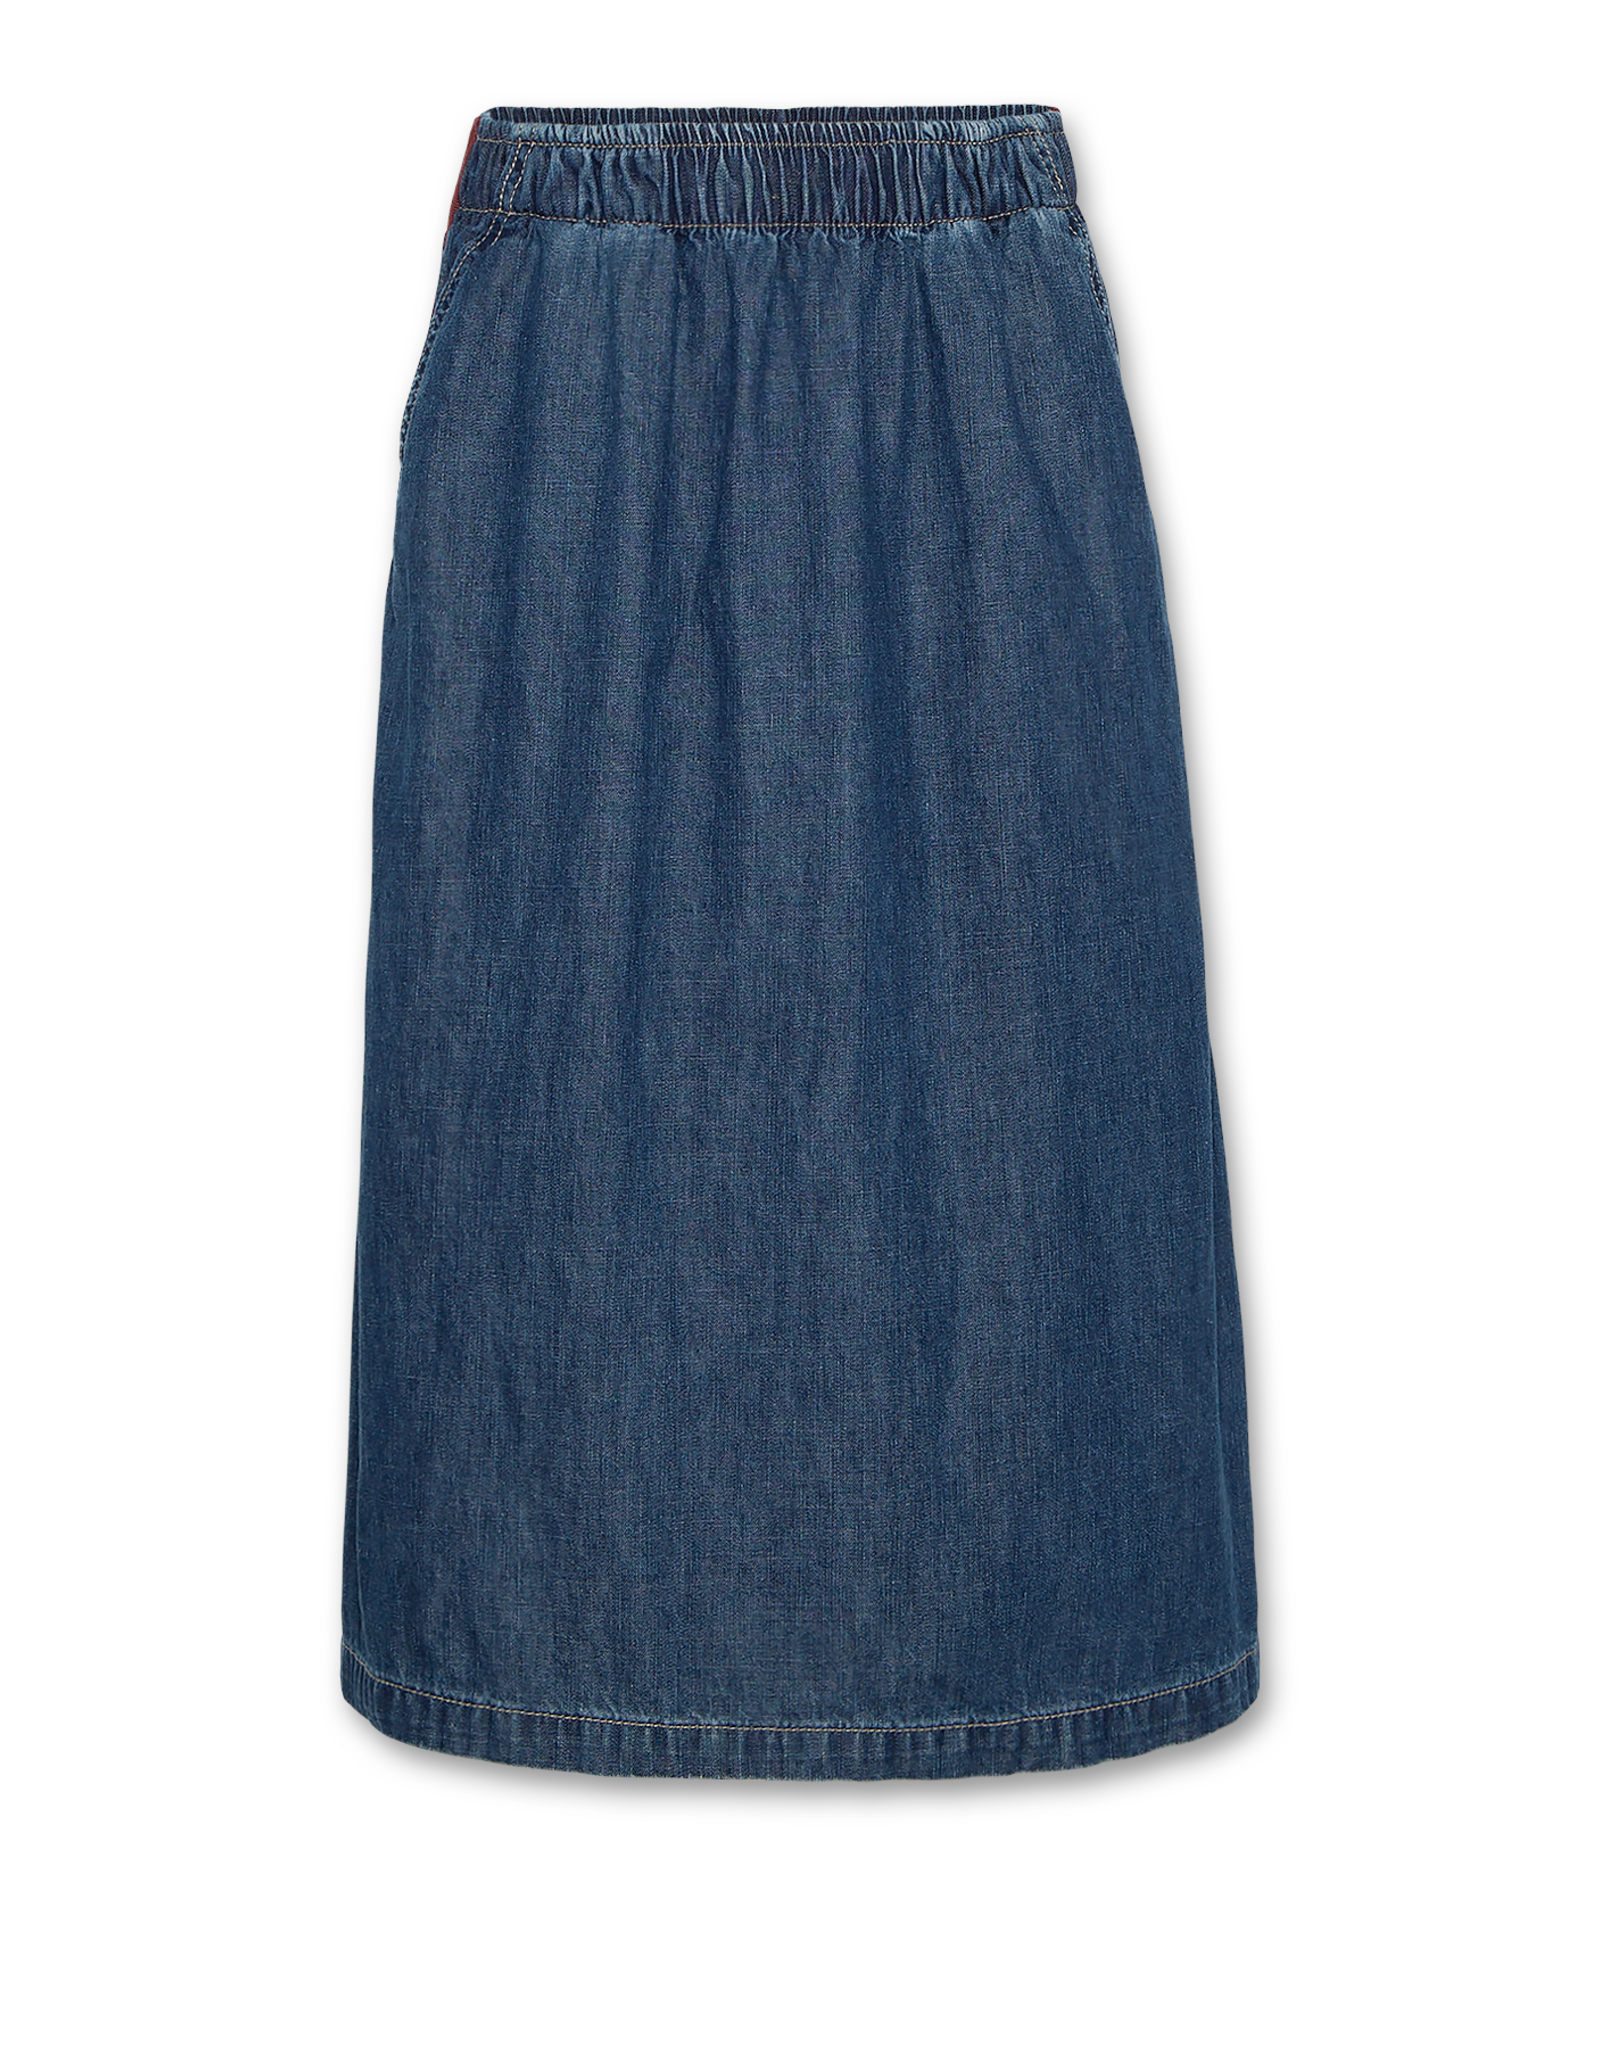 AMERICAN OUTFITTERS AO76 martha jeans skirt wash dark